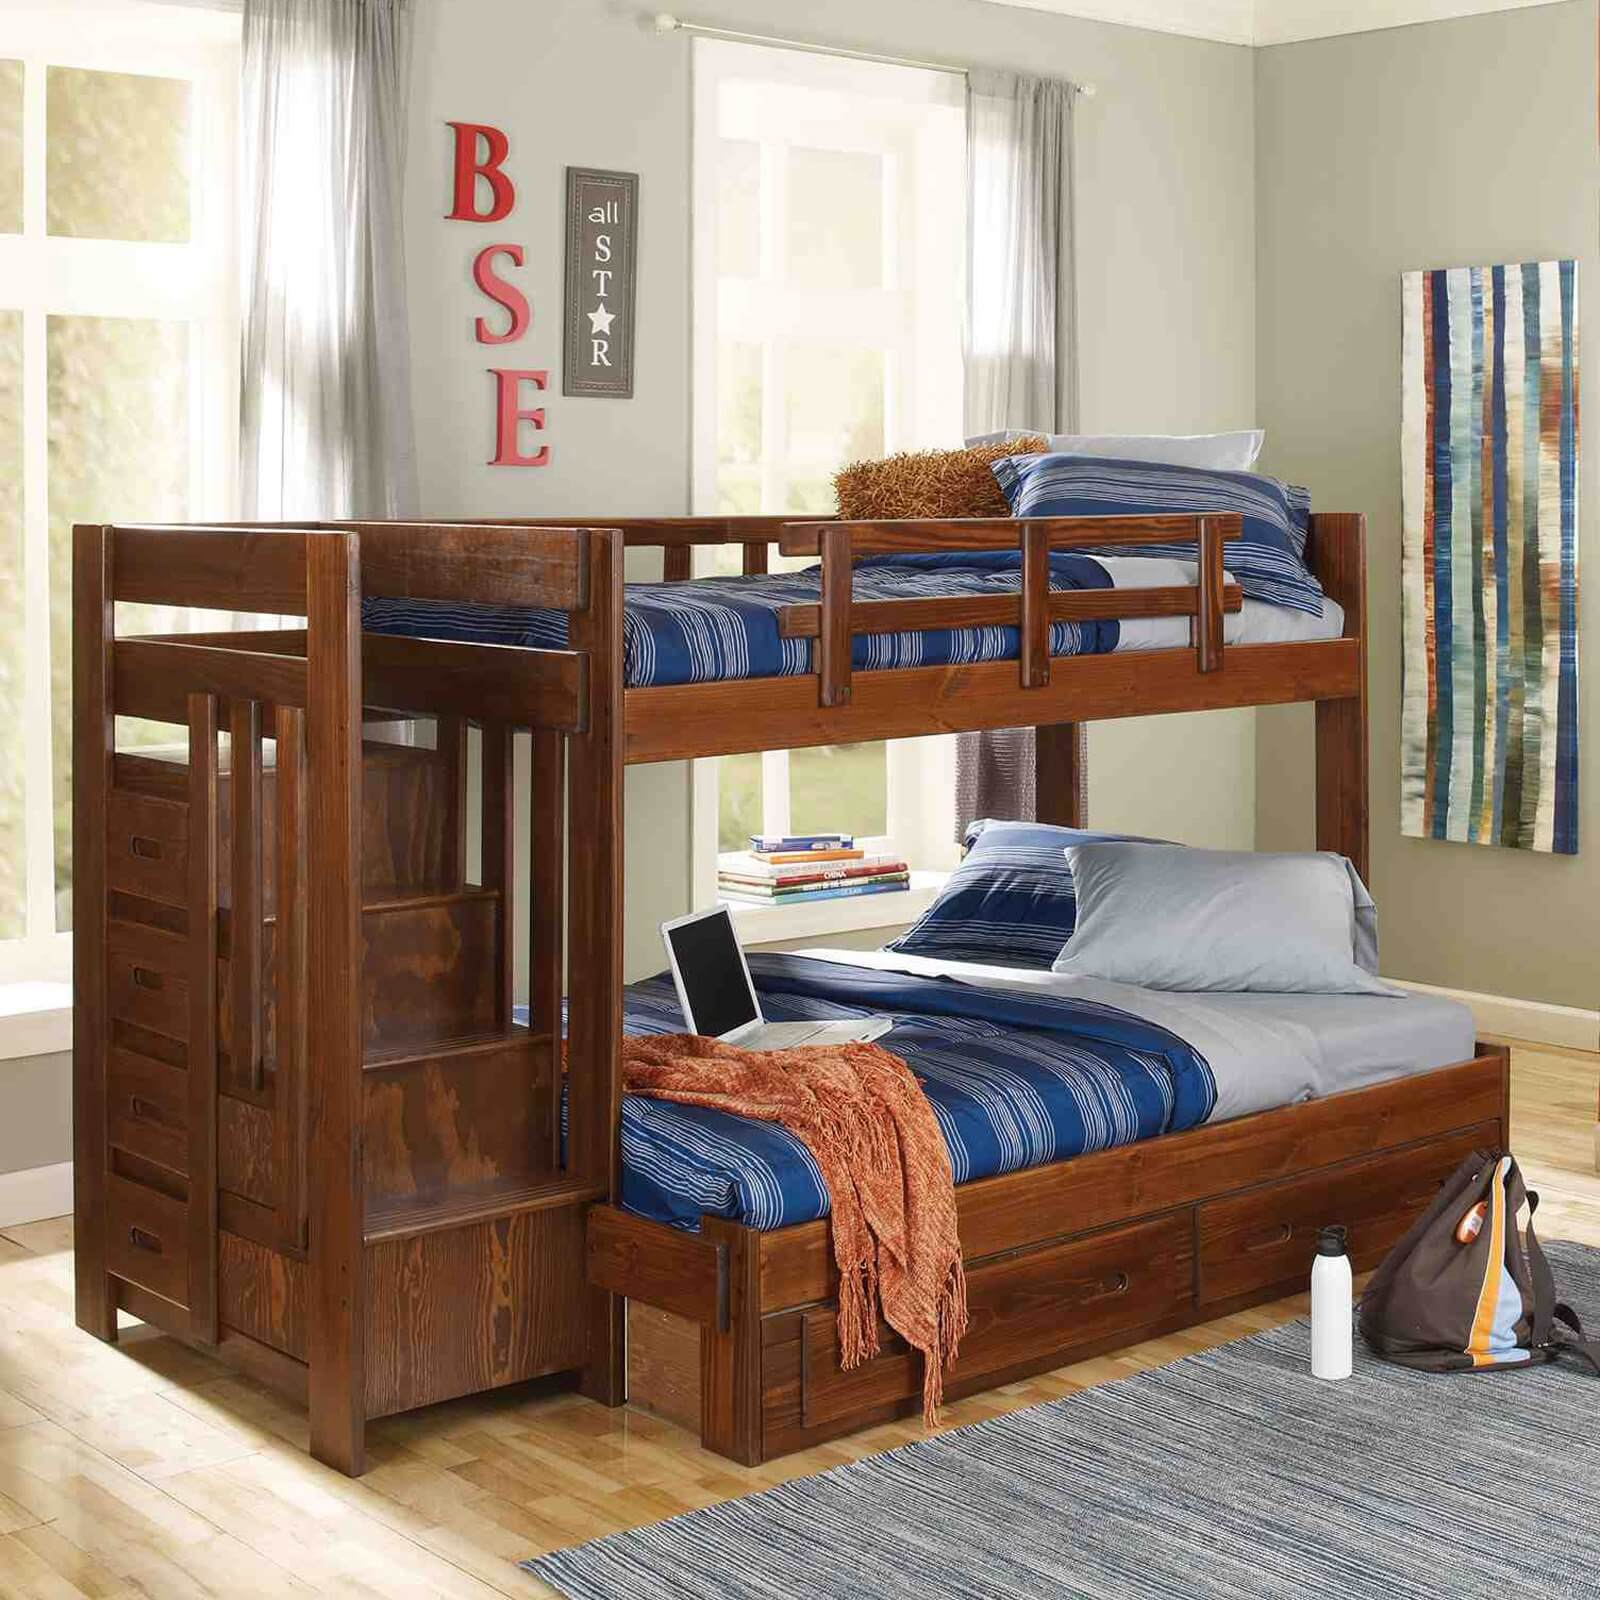 top 10 types of twin over full bunk beds buying guide. Black Bedroom Furniture Sets. Home Design Ideas